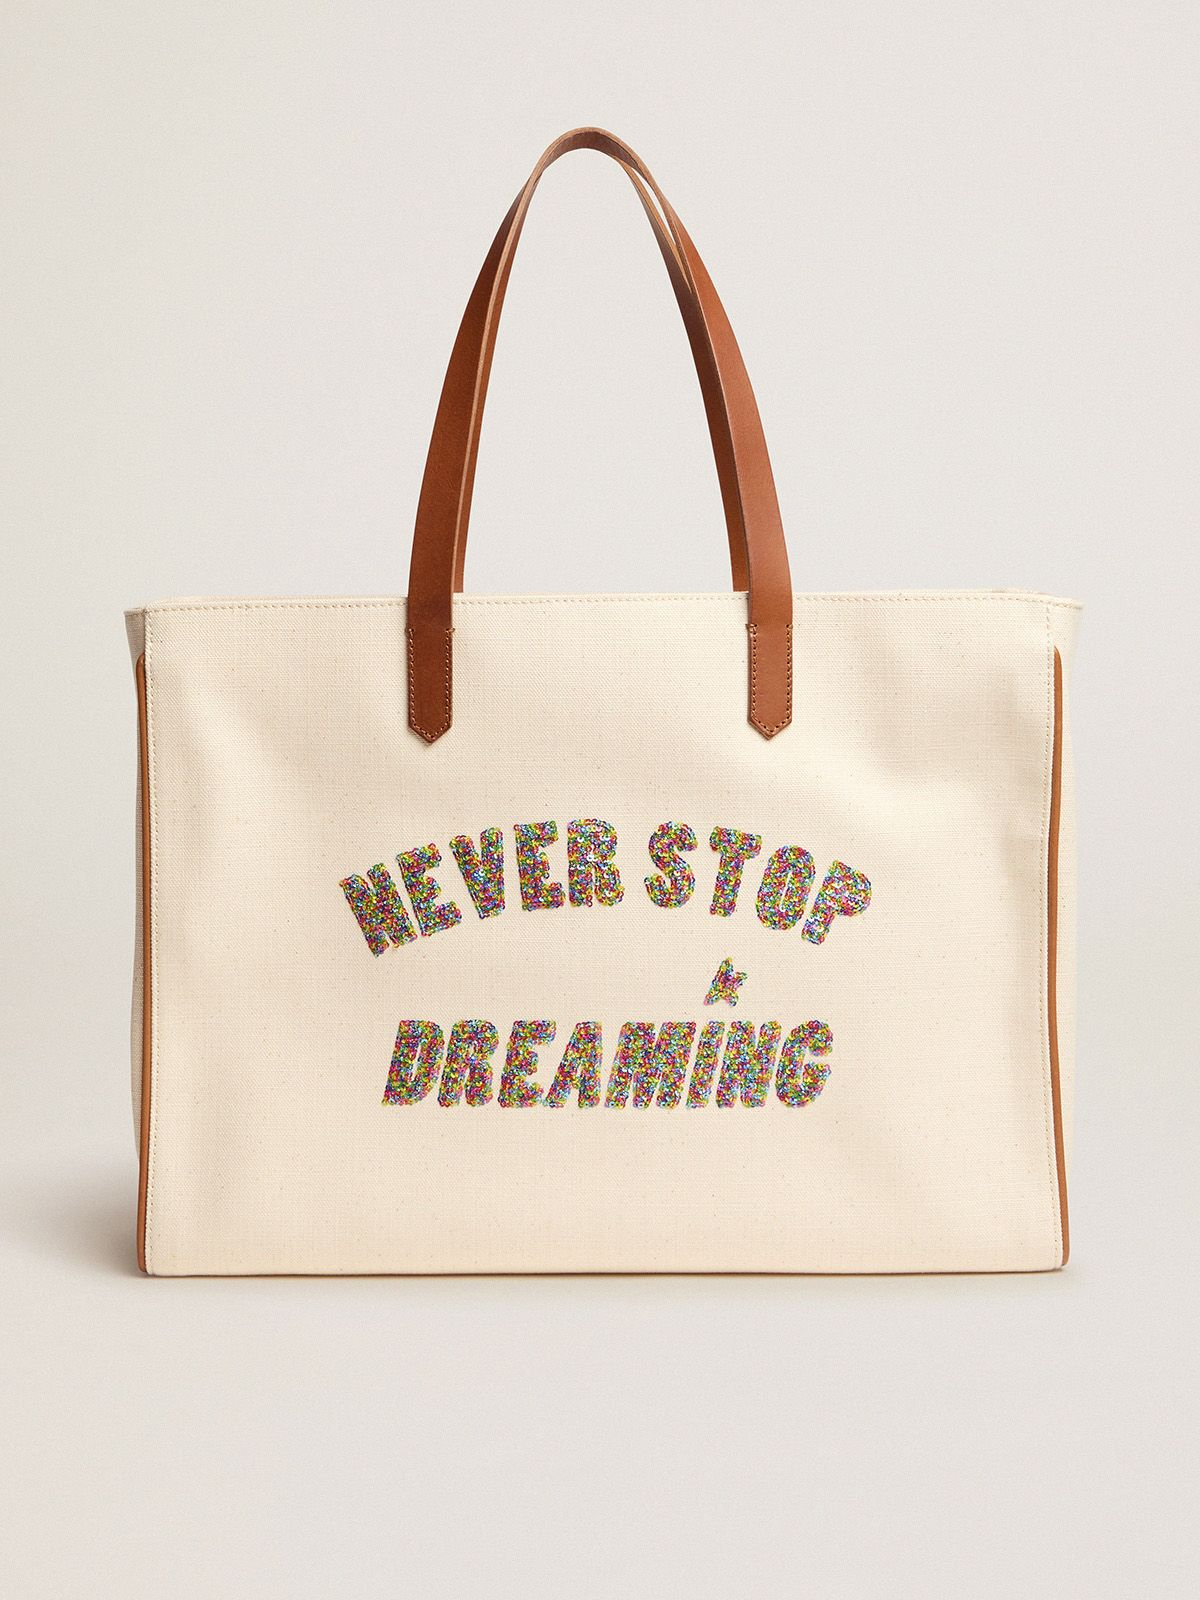 California East-West Never Stop Dreaming glitter bag